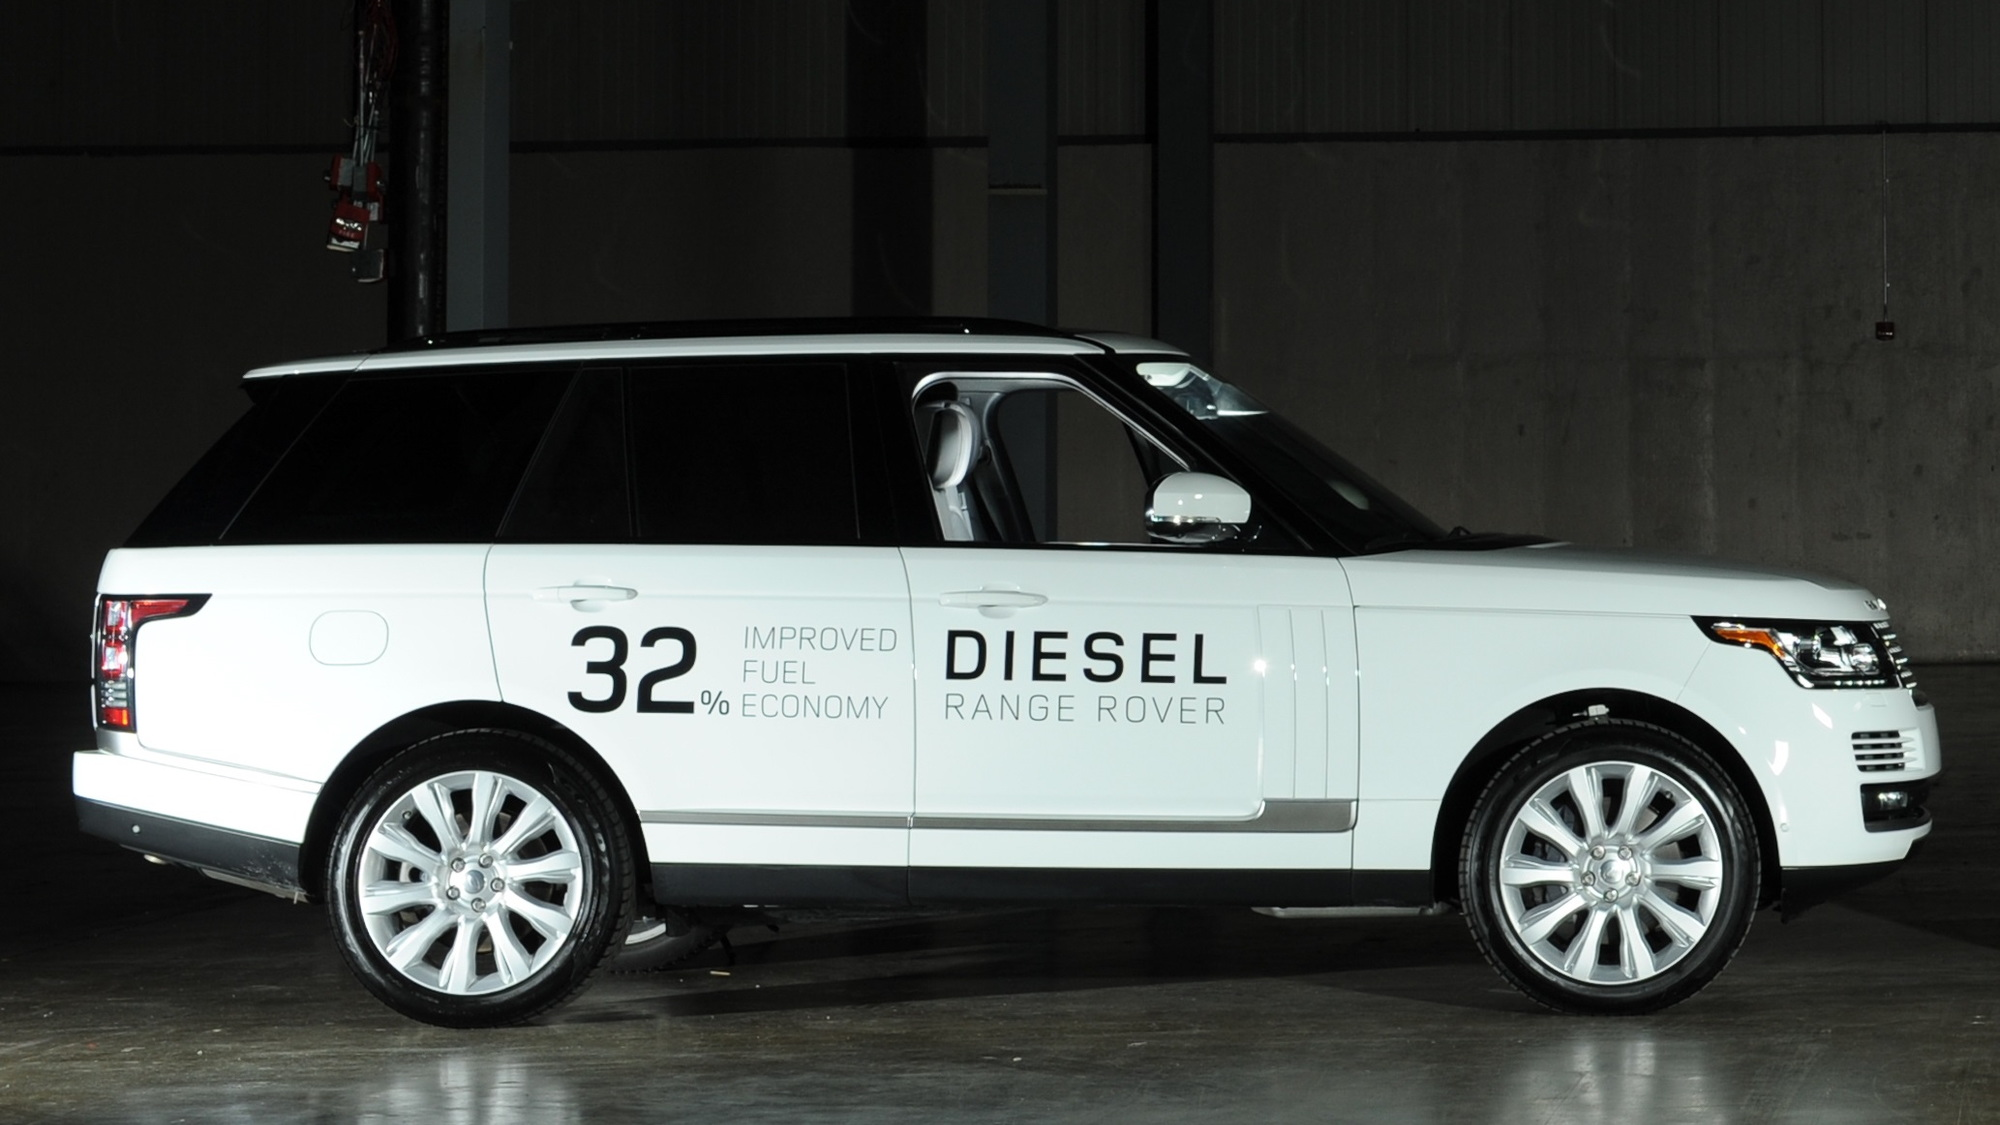 2016 Land Rover Range Rover and Range Rover Sport HSE Td6 diesel models, 2015 Detroit Auto Show